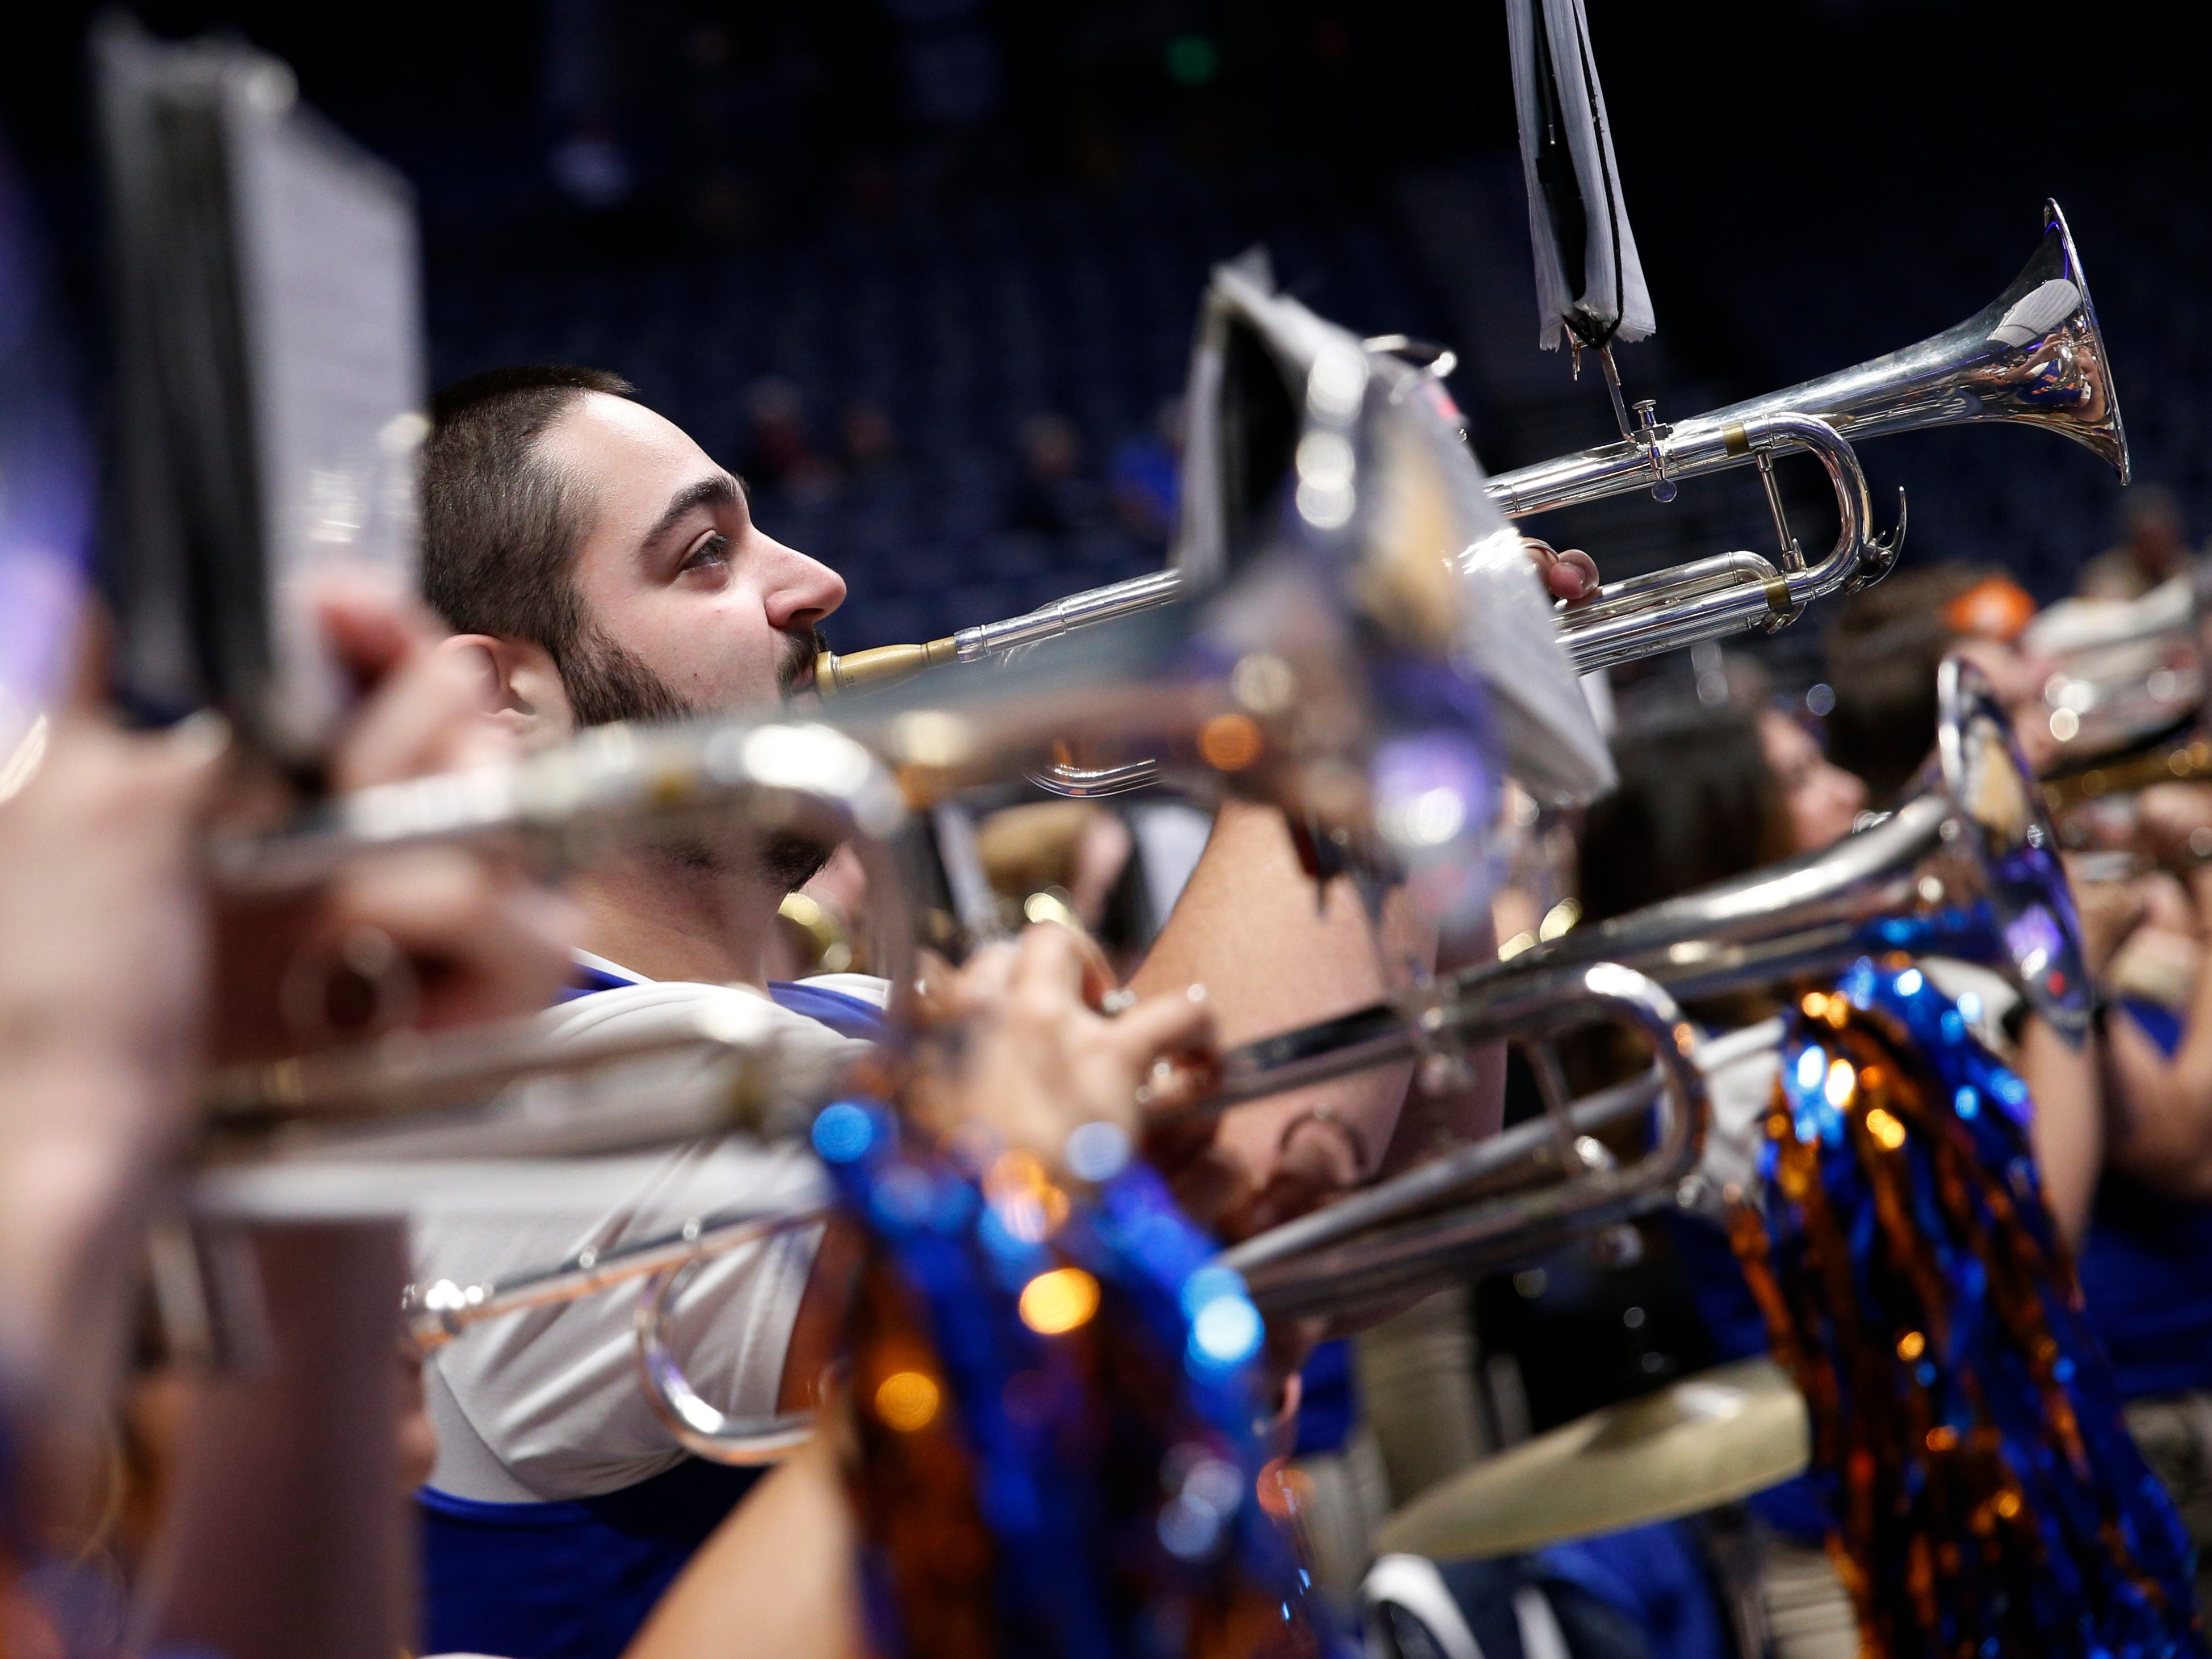 The Florida band plays before the SEC Men's Basketball Tournament game at Bridgestone Arena in Nashville, Tenn., Thursday, March 14, 2019.